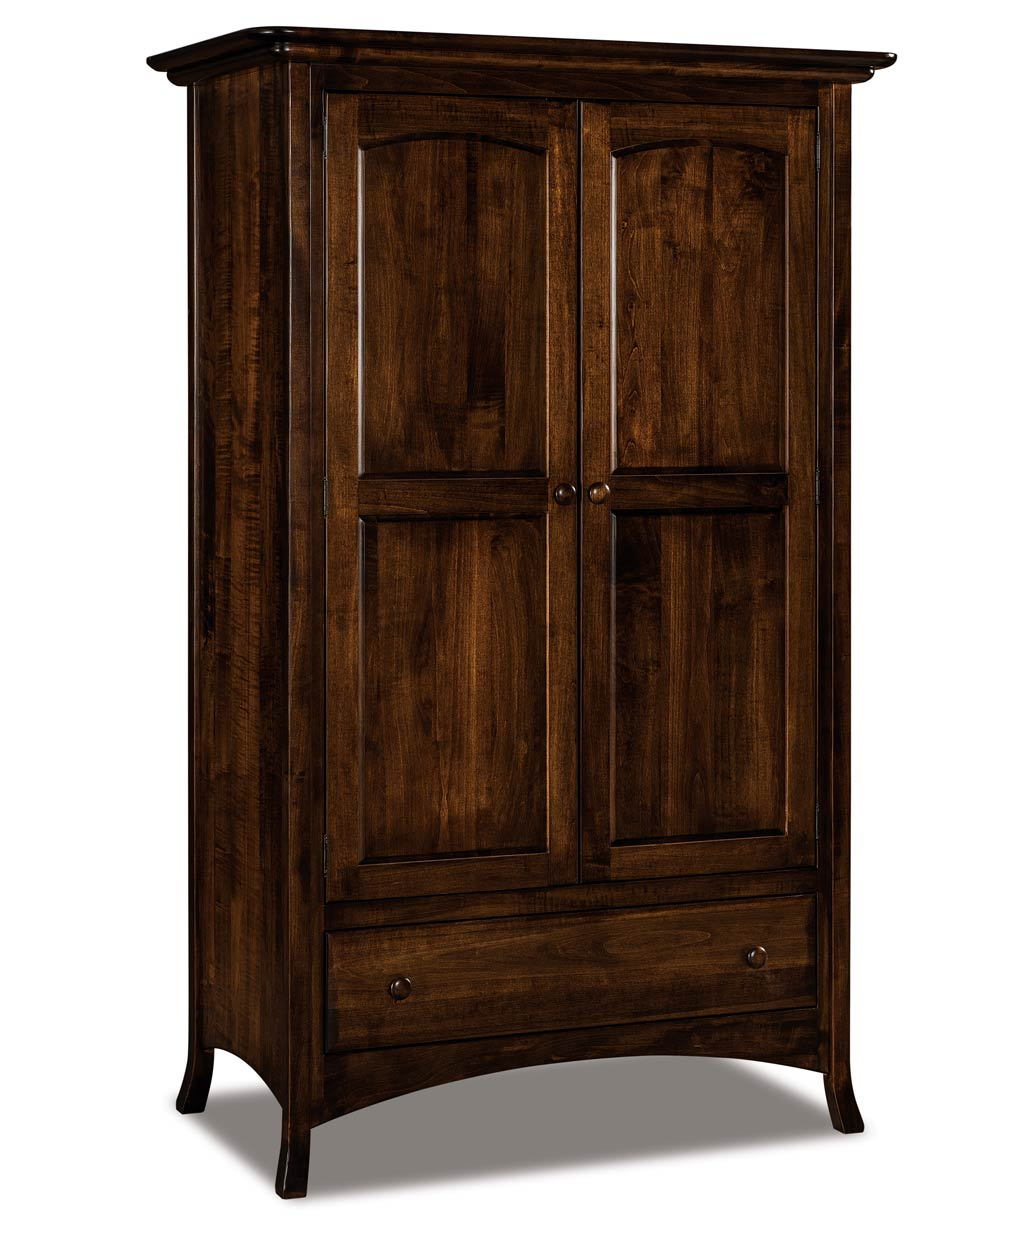 Carlisle Wardrobe Armoire - Amish Direct Furniture